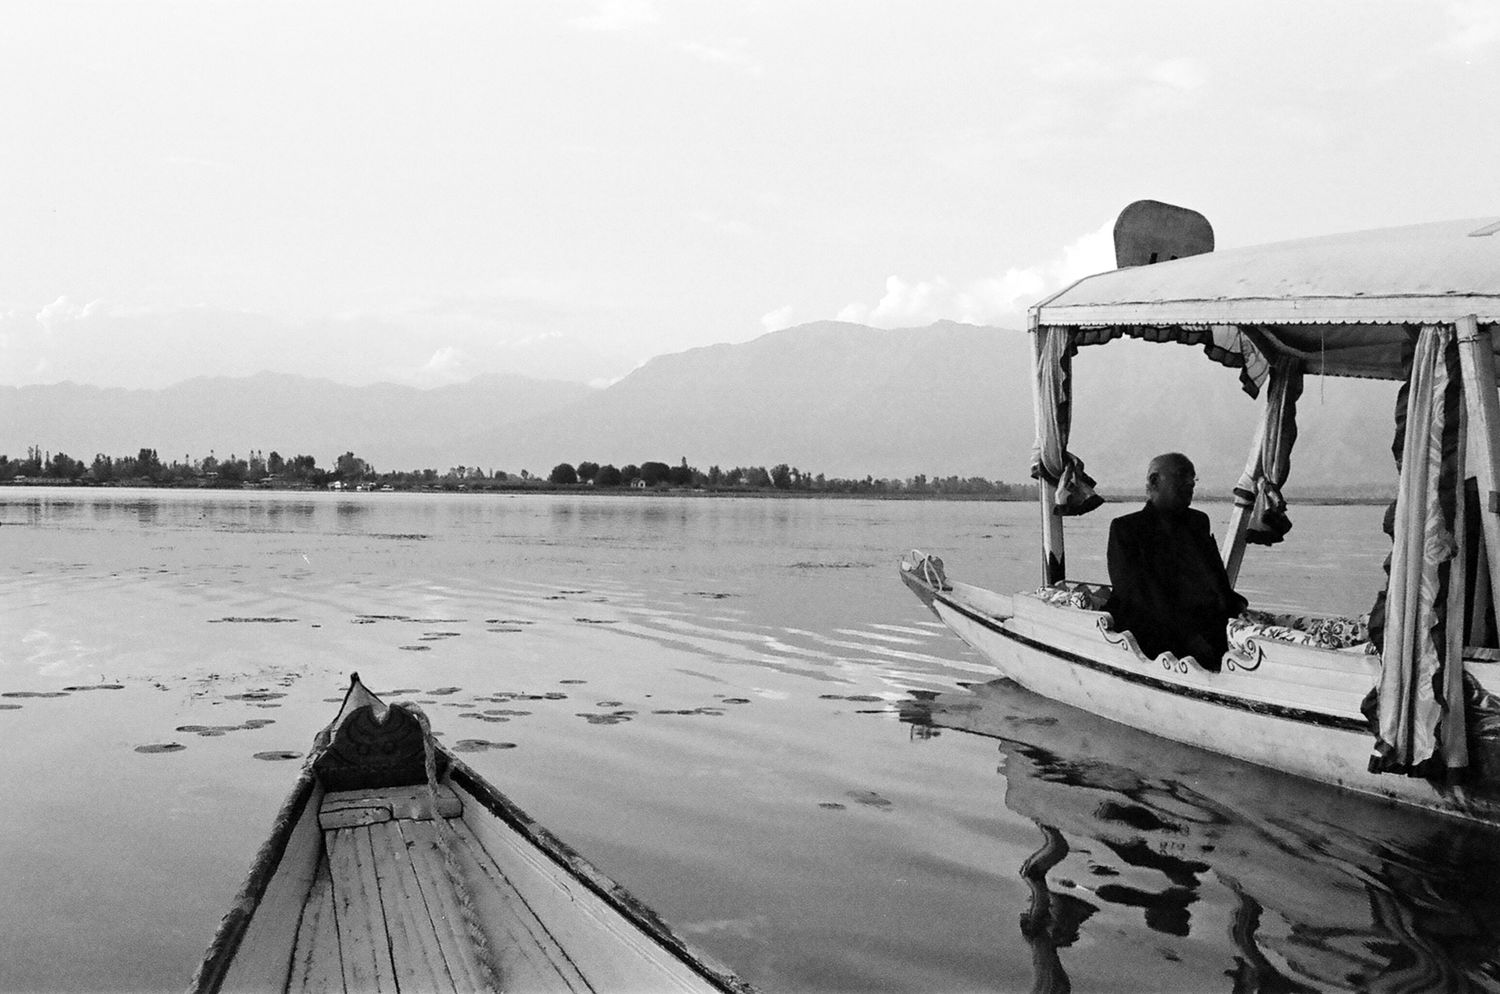 Shikara Ride, Srinagar 2015   Edition 1 of 2